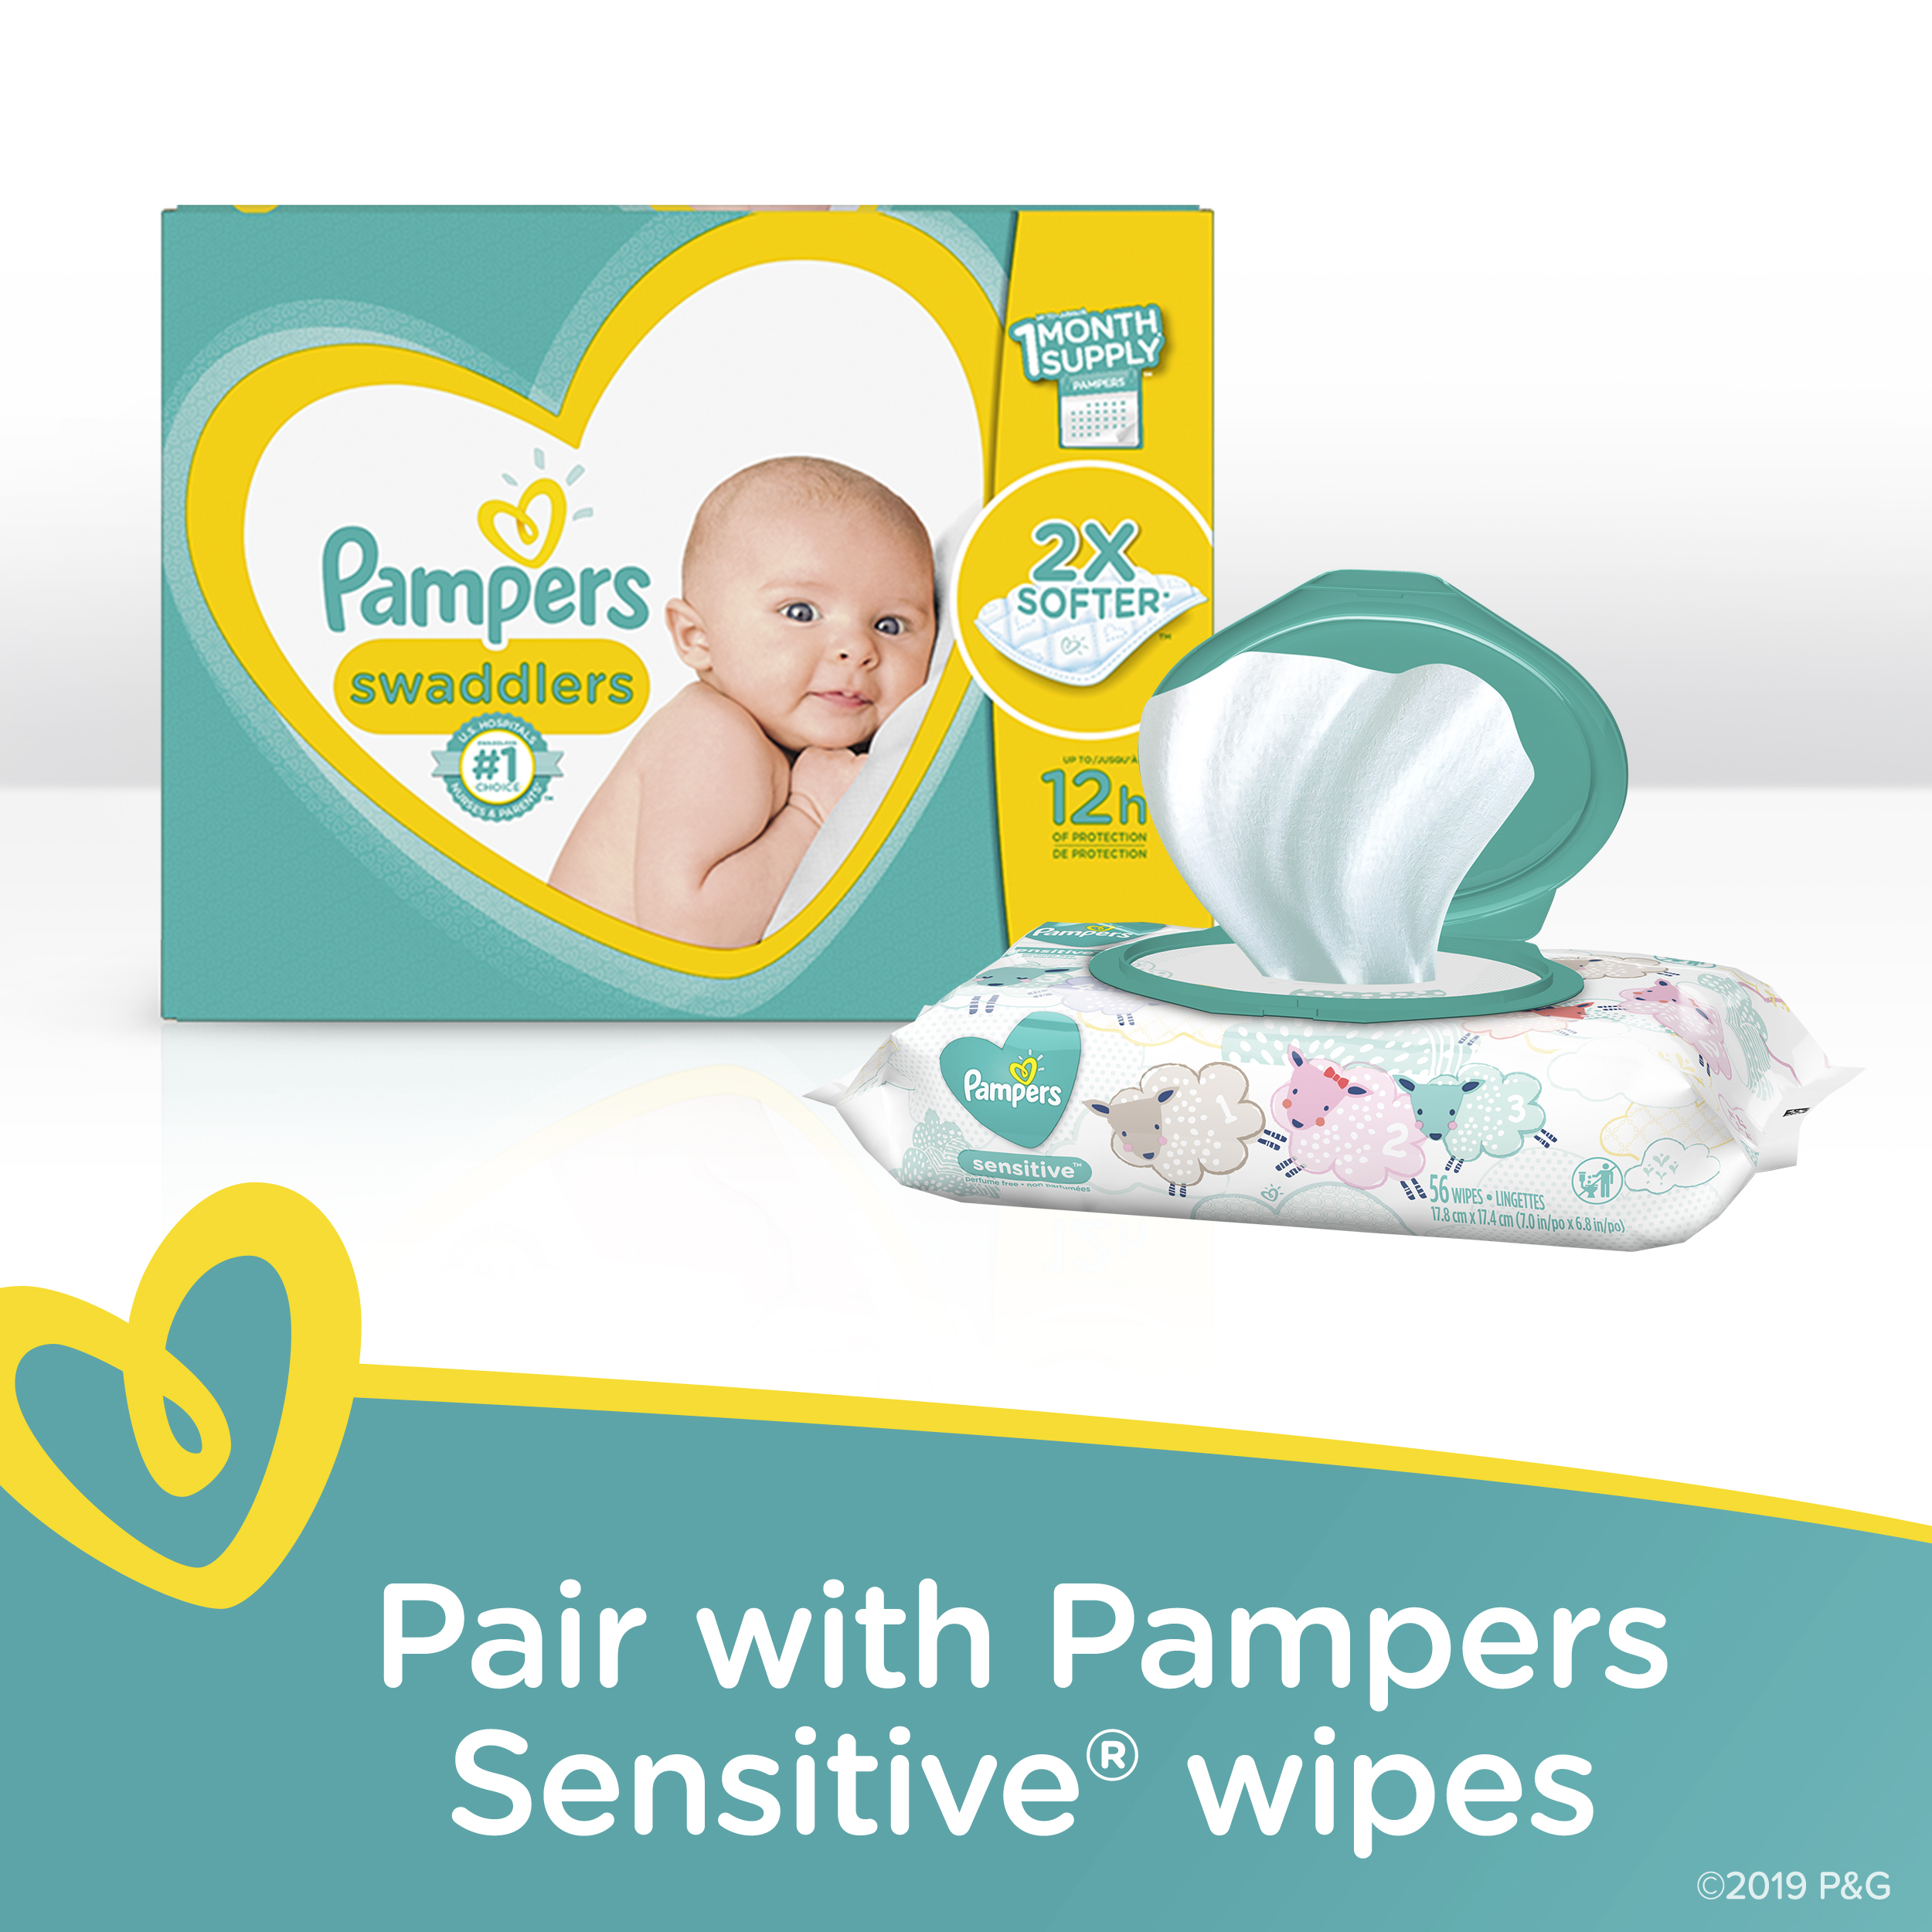 Baby Dry Disposable Baby Diapers Pampers Diapers Size 4 1 Set 336 Count 186 Count ONE MONTH SUPPLY with Baby Wipes Sensitive 6X Pop-Top Packs